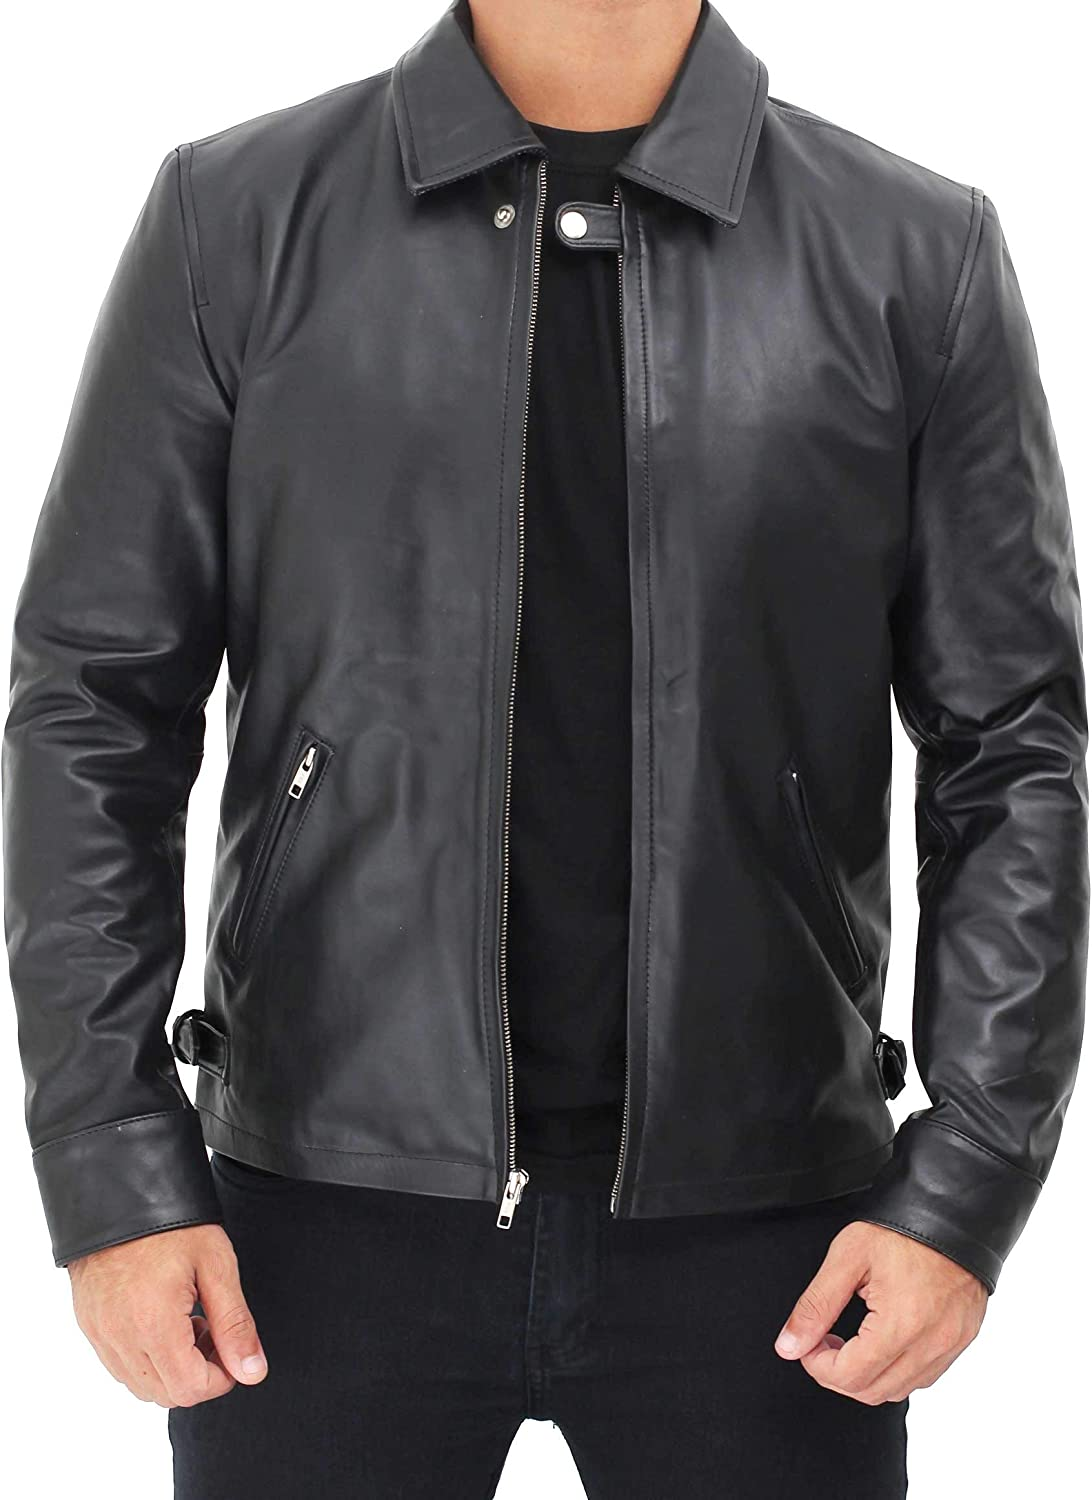 Vintage Leather Jacket Mens - Real Cowhide Leather Retro Jackets & Coat